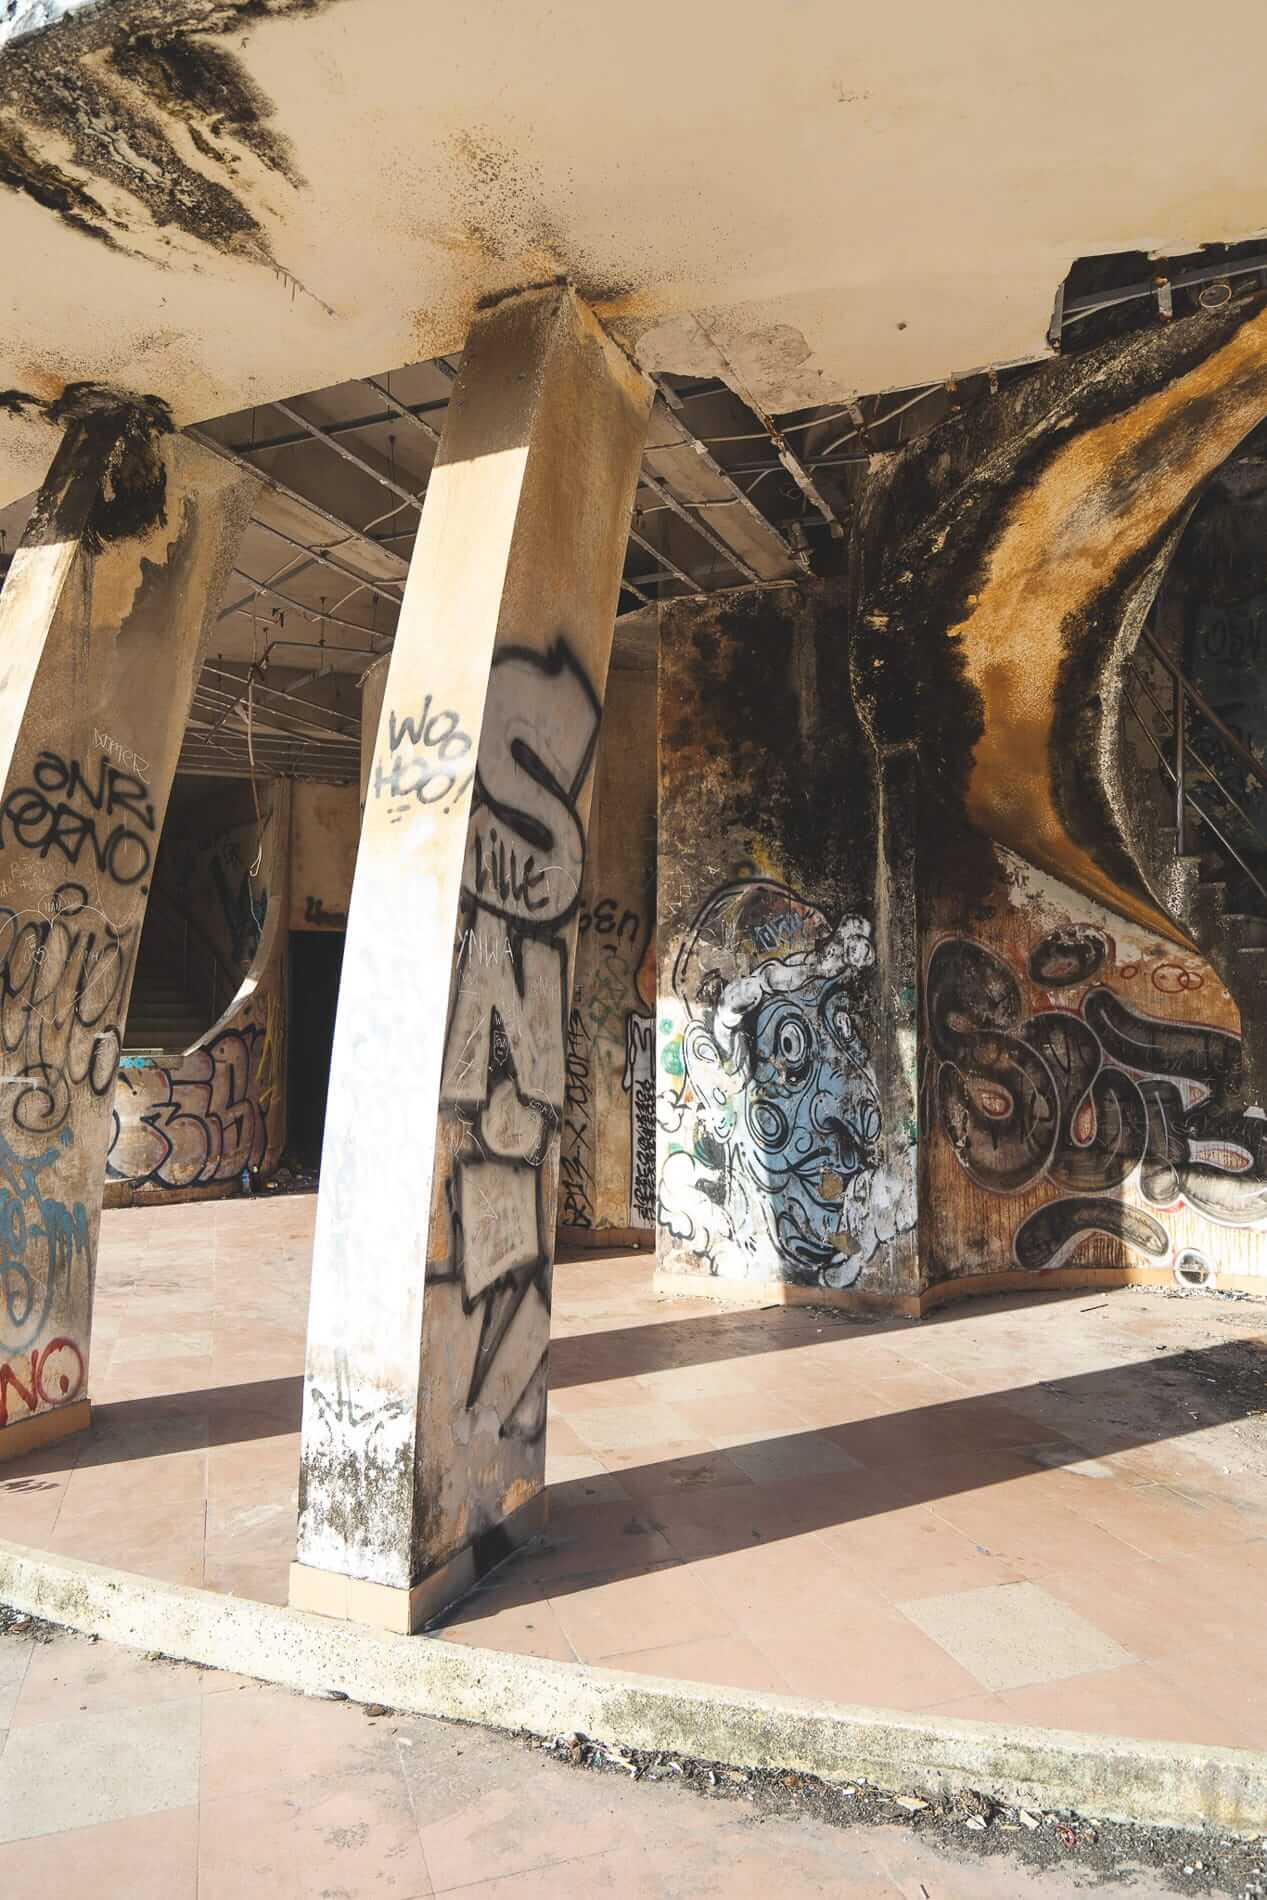 Amphitheater with graffiti - Hues Abandoned Water Park